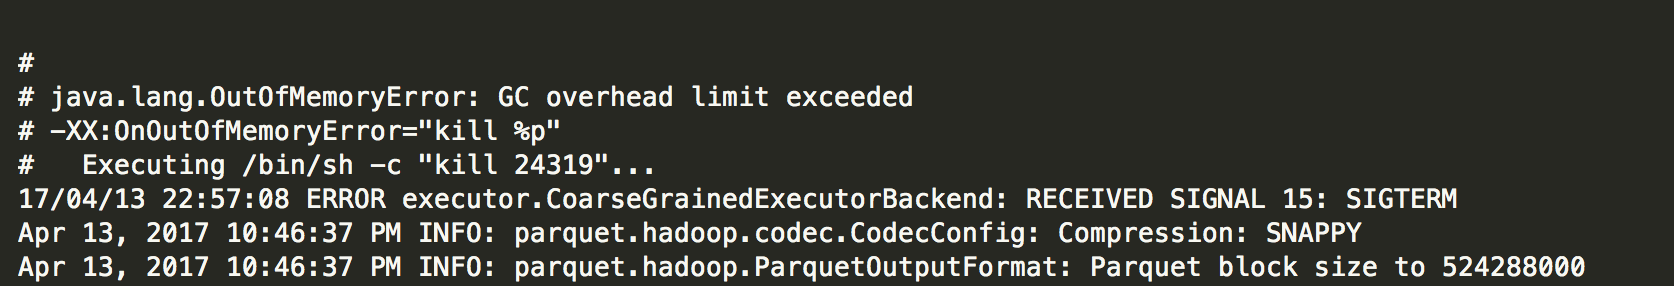 Executing Functions using the Apps Script API